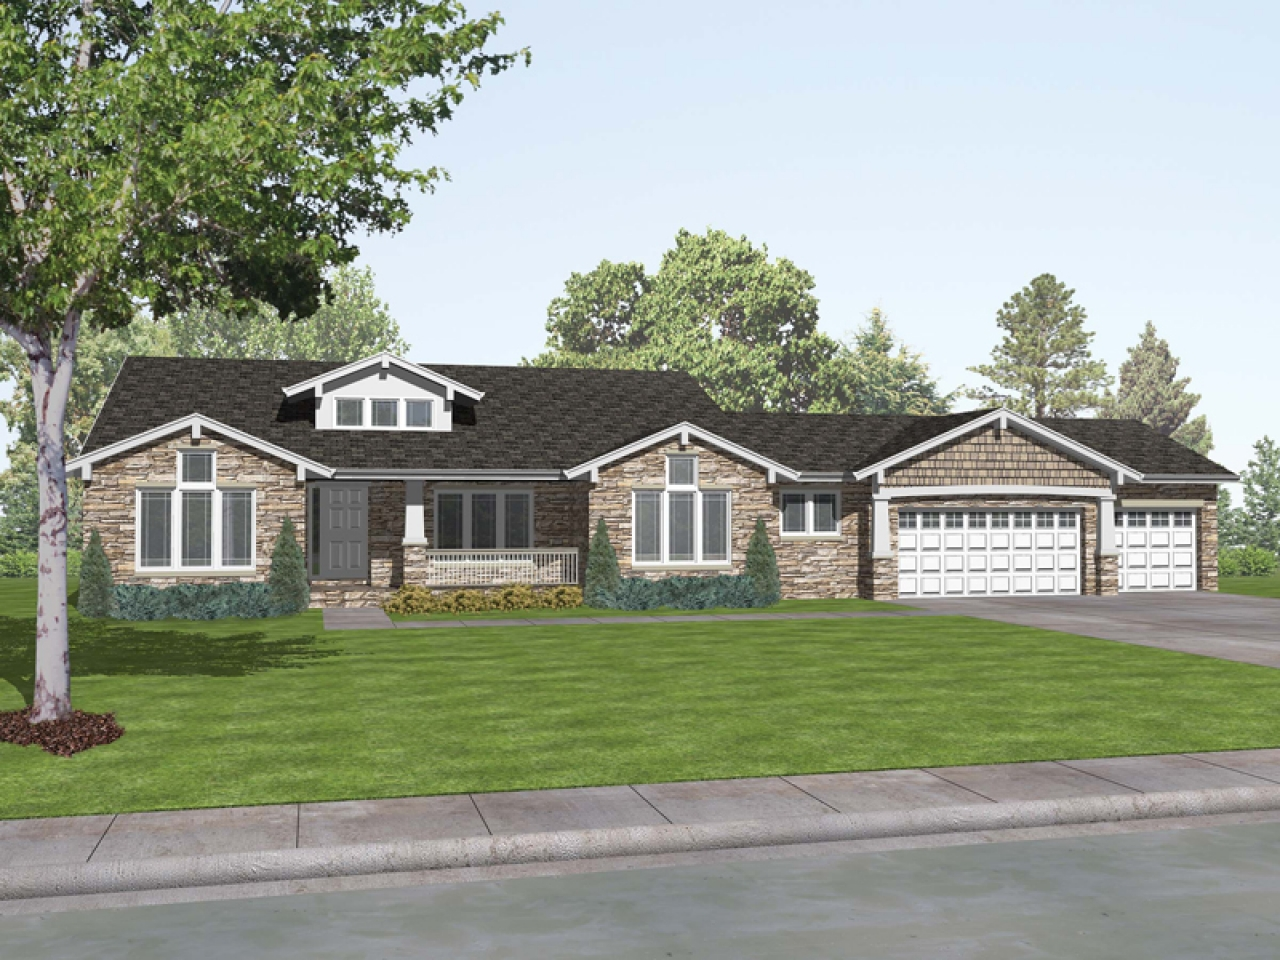 Romaine place ranch home plan 046d 0009 house plans and for Home plans and more